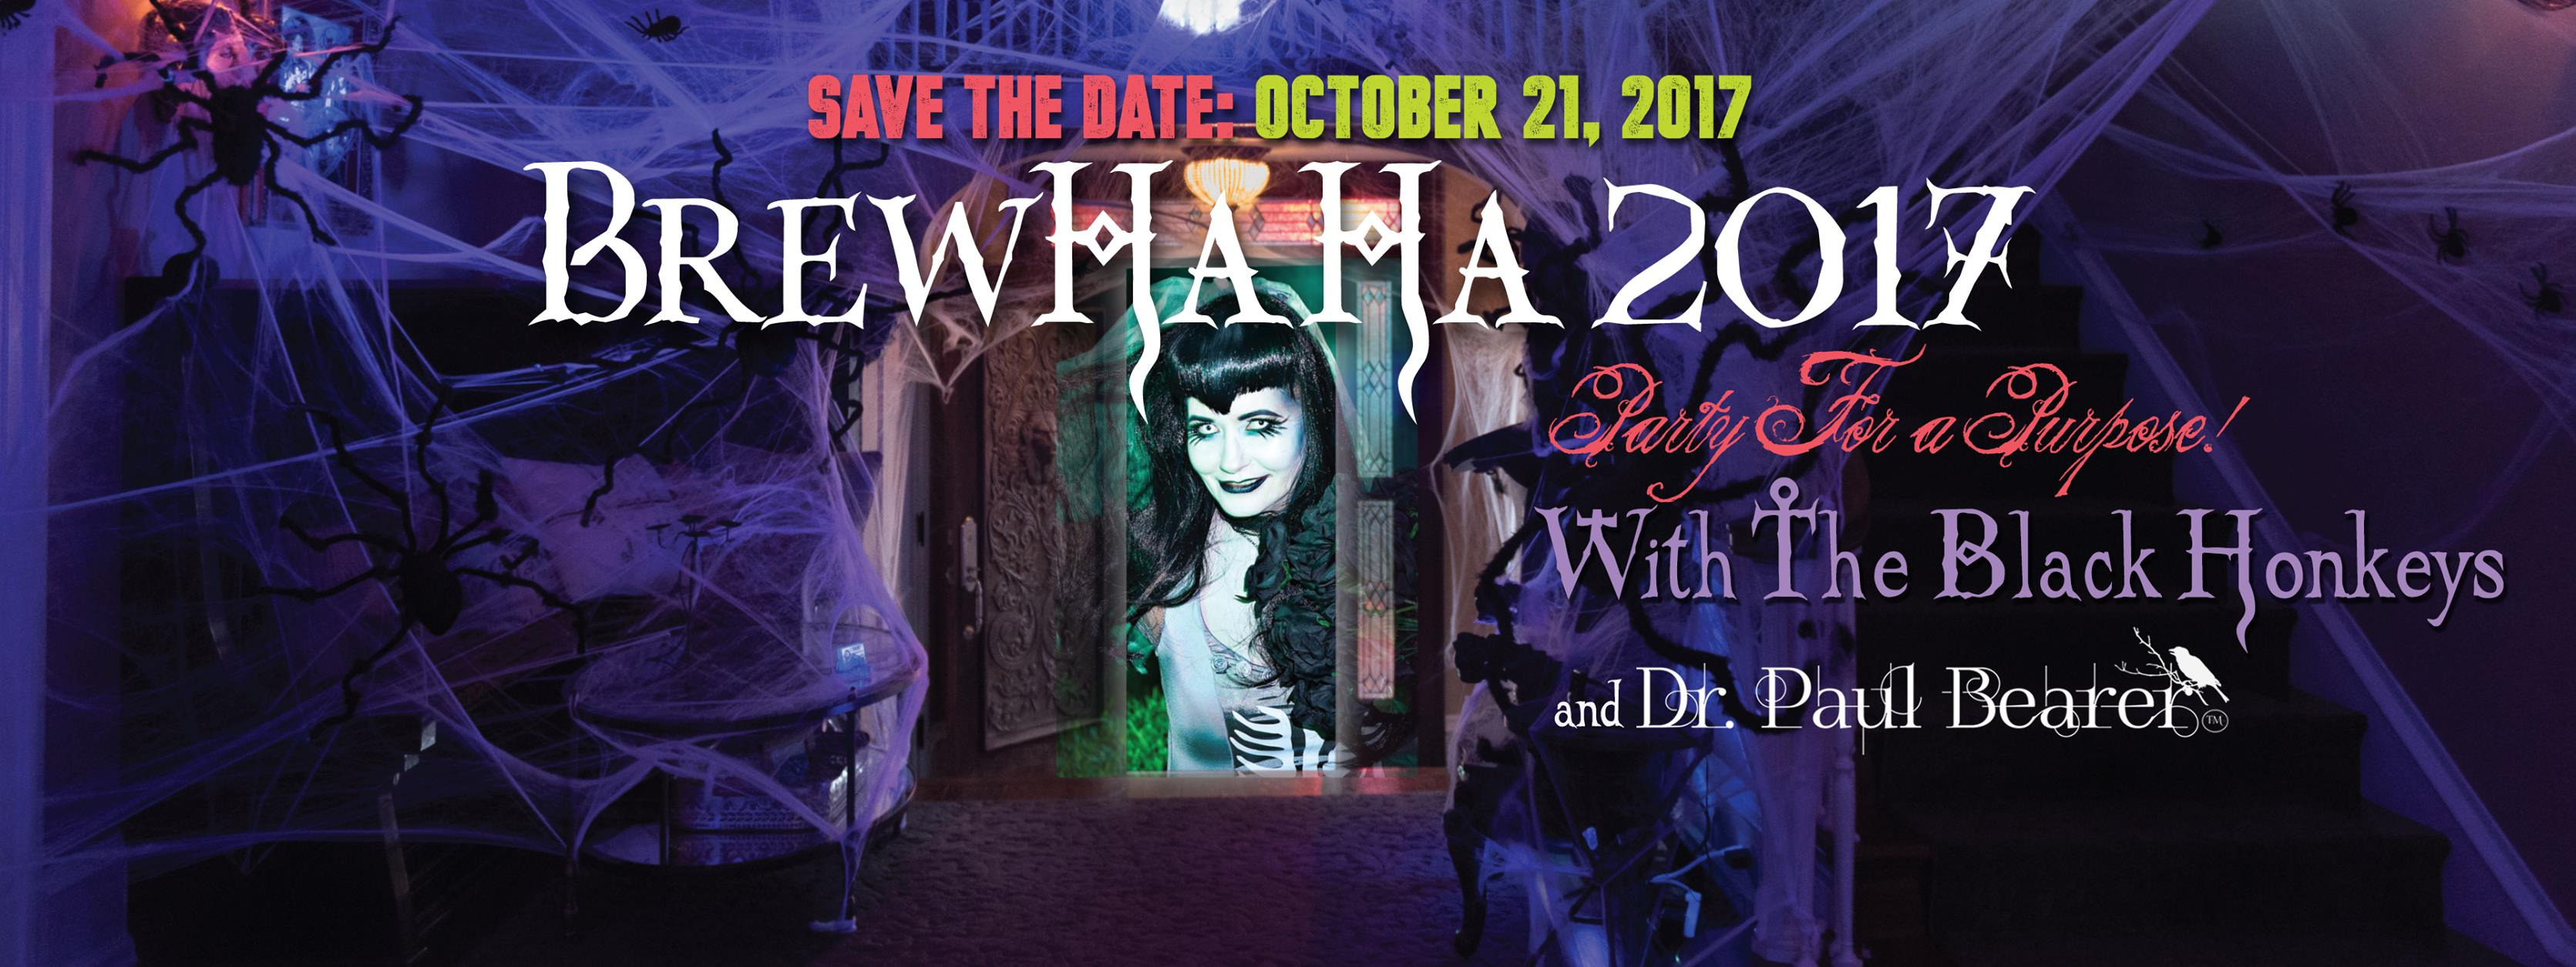 Join Dr. Paul Bearer at BrewHaHa